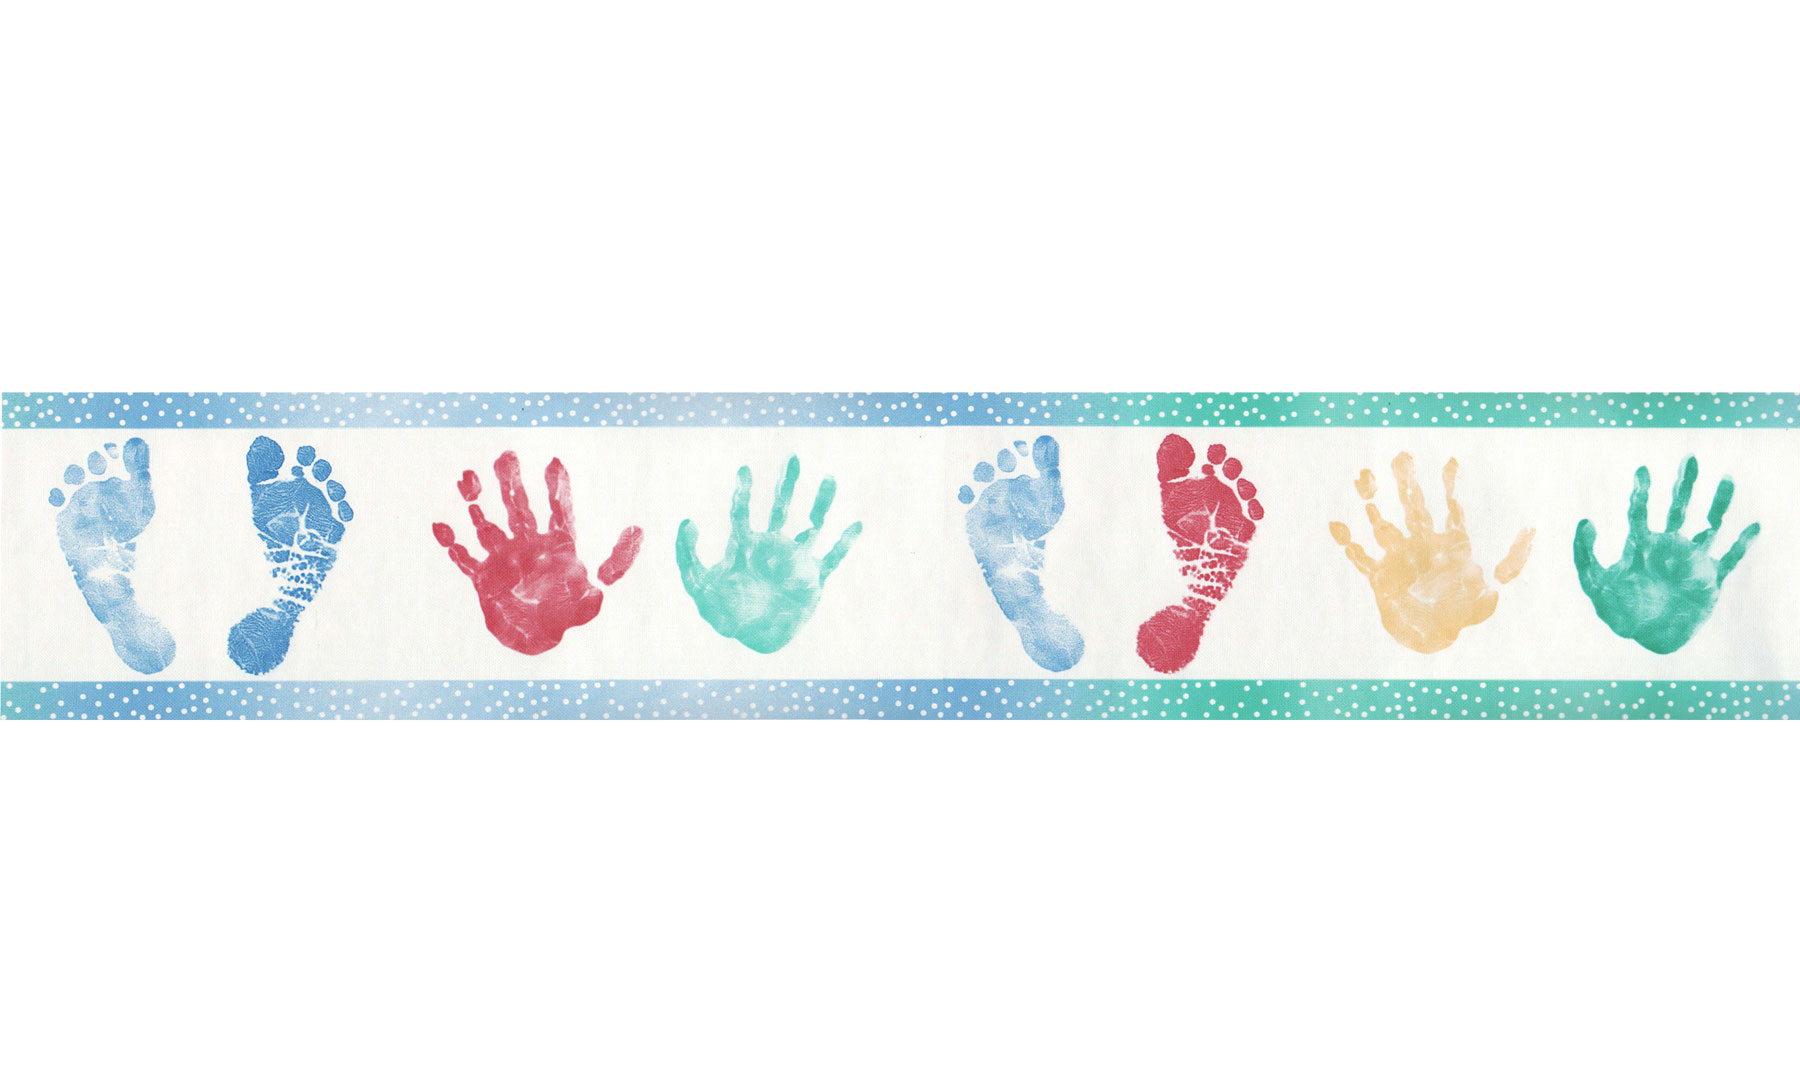 Handprint clipart border 12440633 Wallcoverings com Mountain Footprints